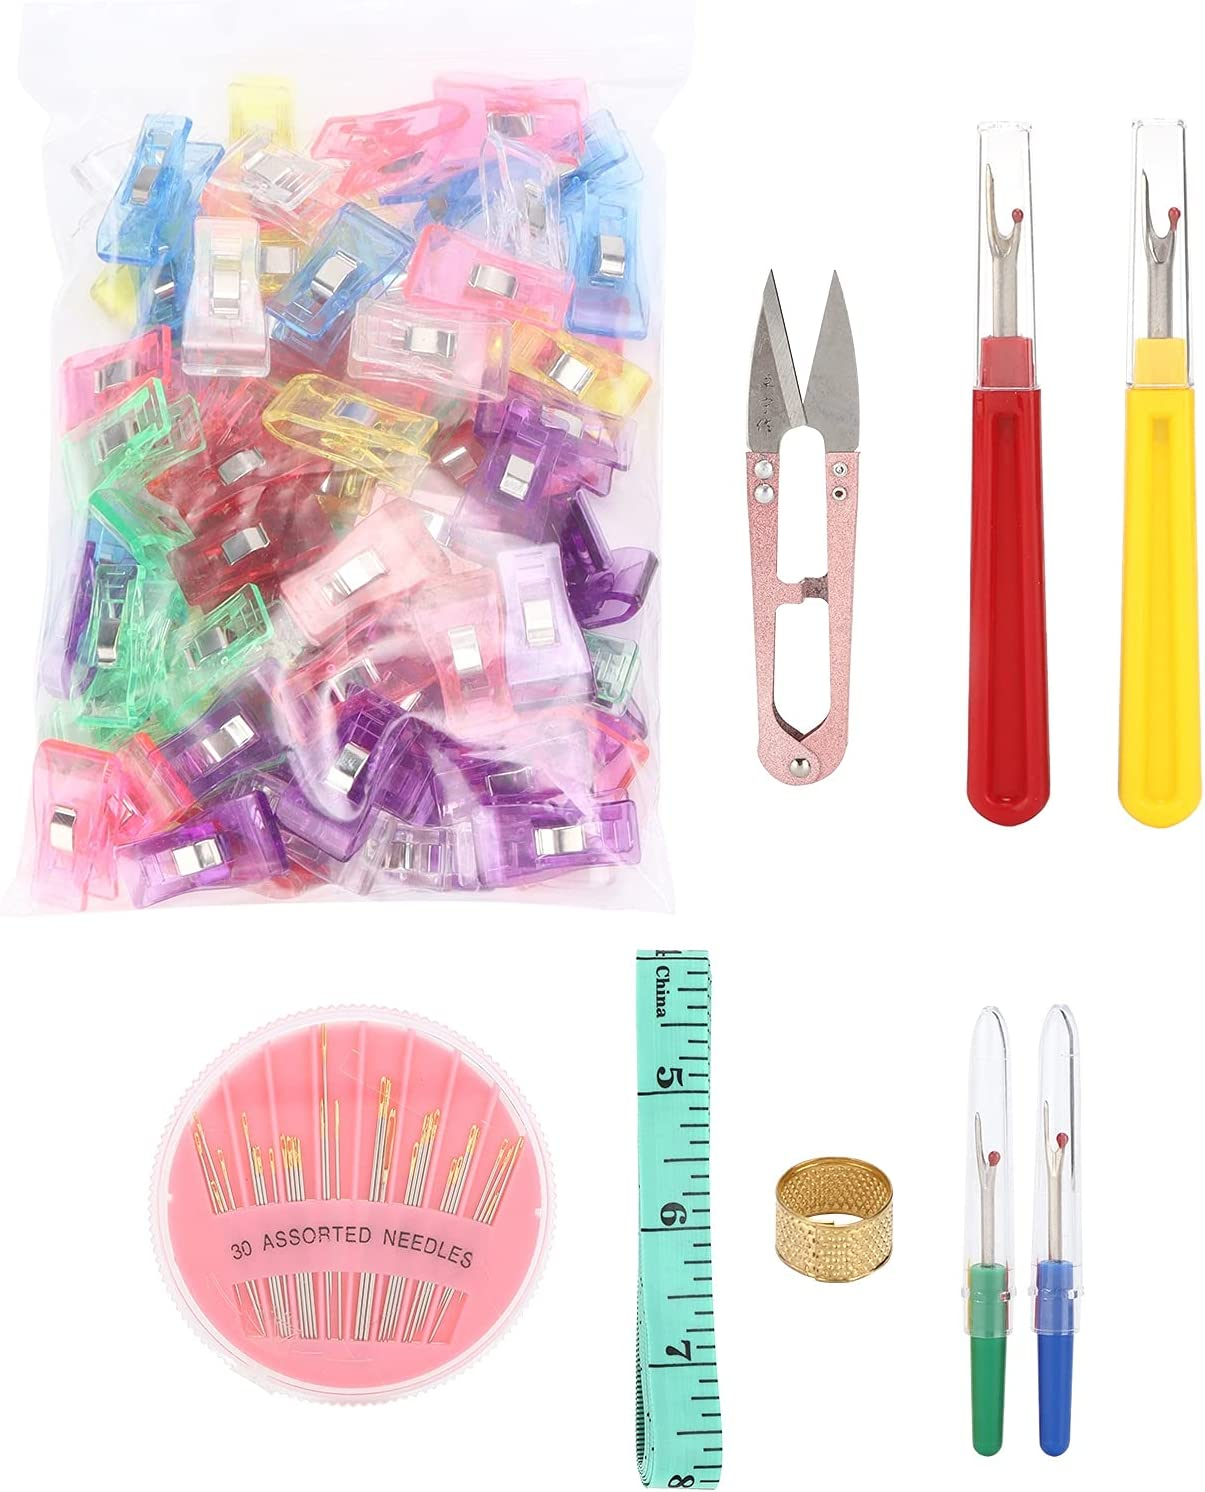 ASOMI Seam Ripper Kit Colorful Durable Stainless Handy Handles T